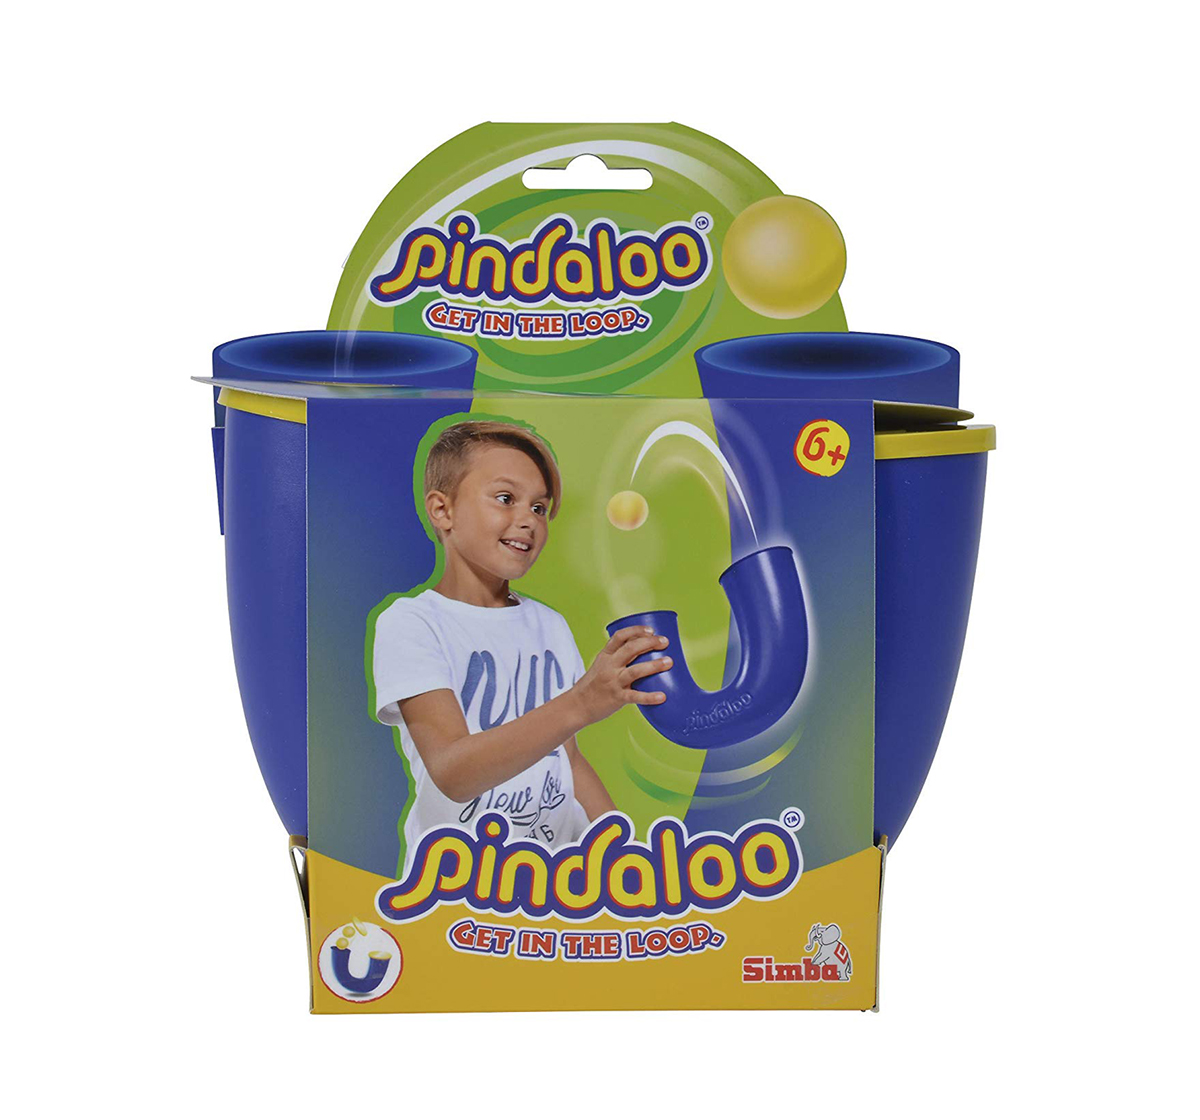 Pindaloo | Simba Pindaloo Ball Game Ball Sports & Accessories for Kids age 6Y+ (Blue)